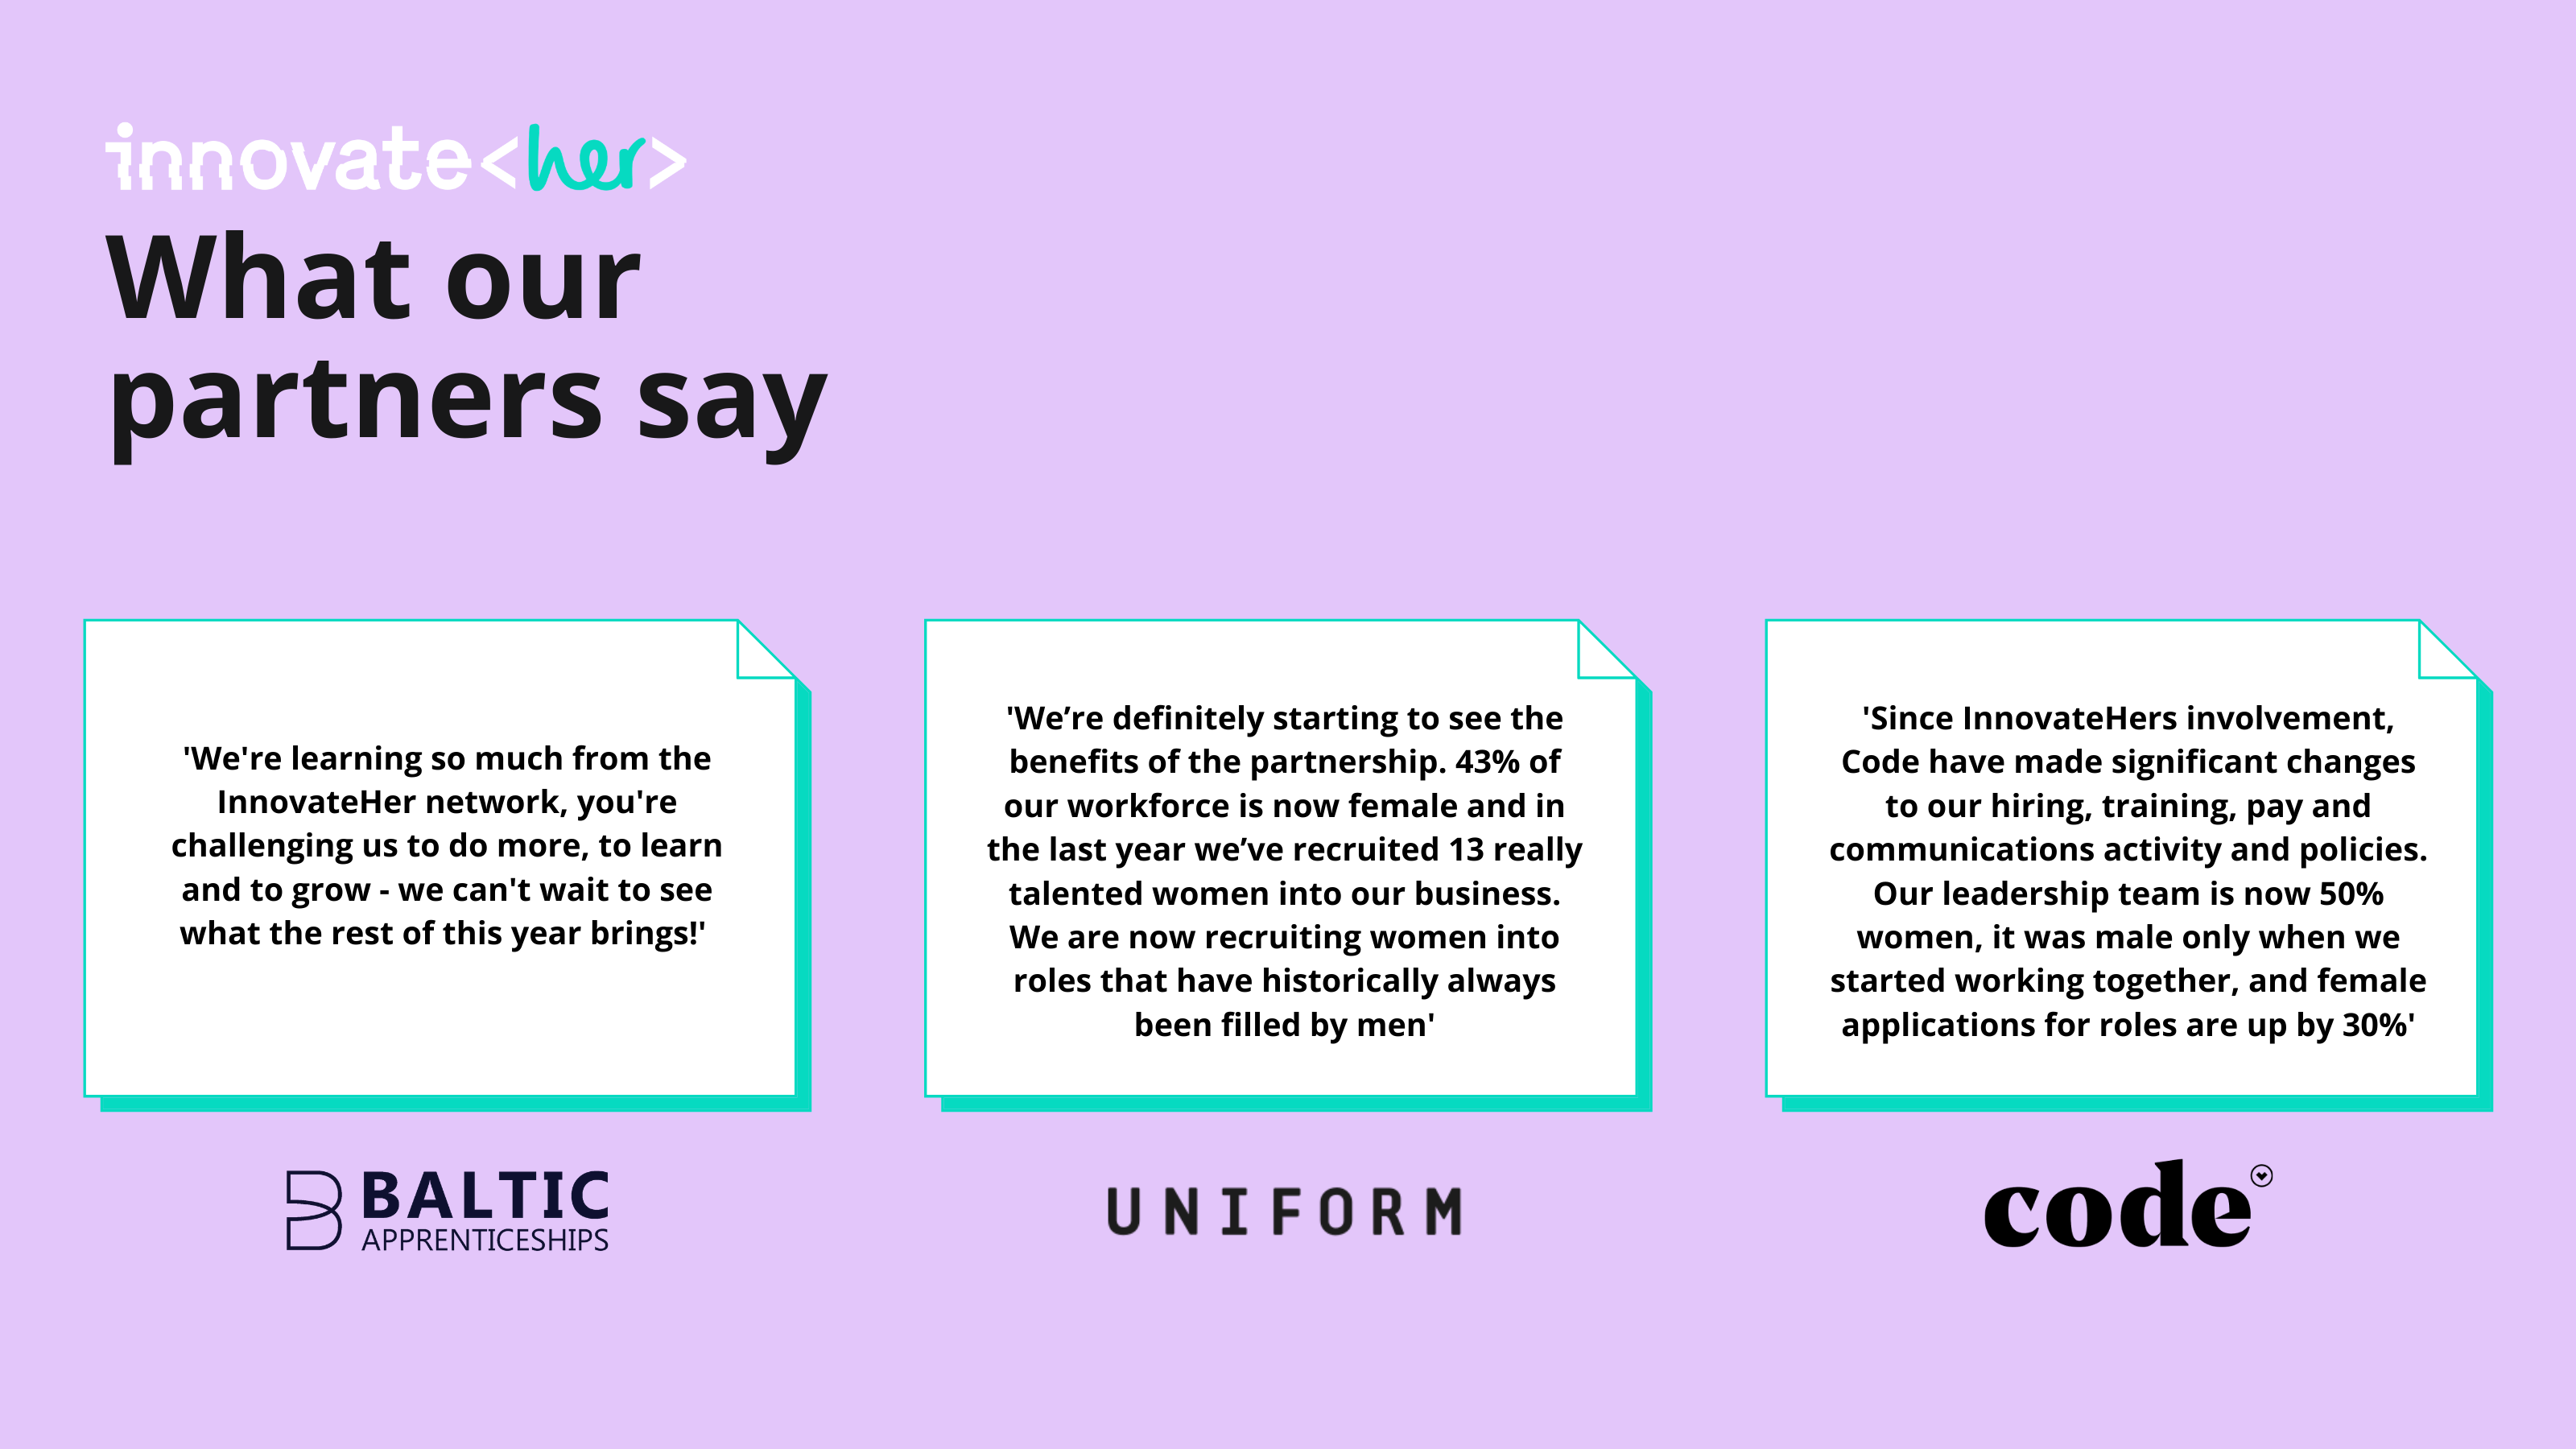 Positive quotes from InnovateHer partners